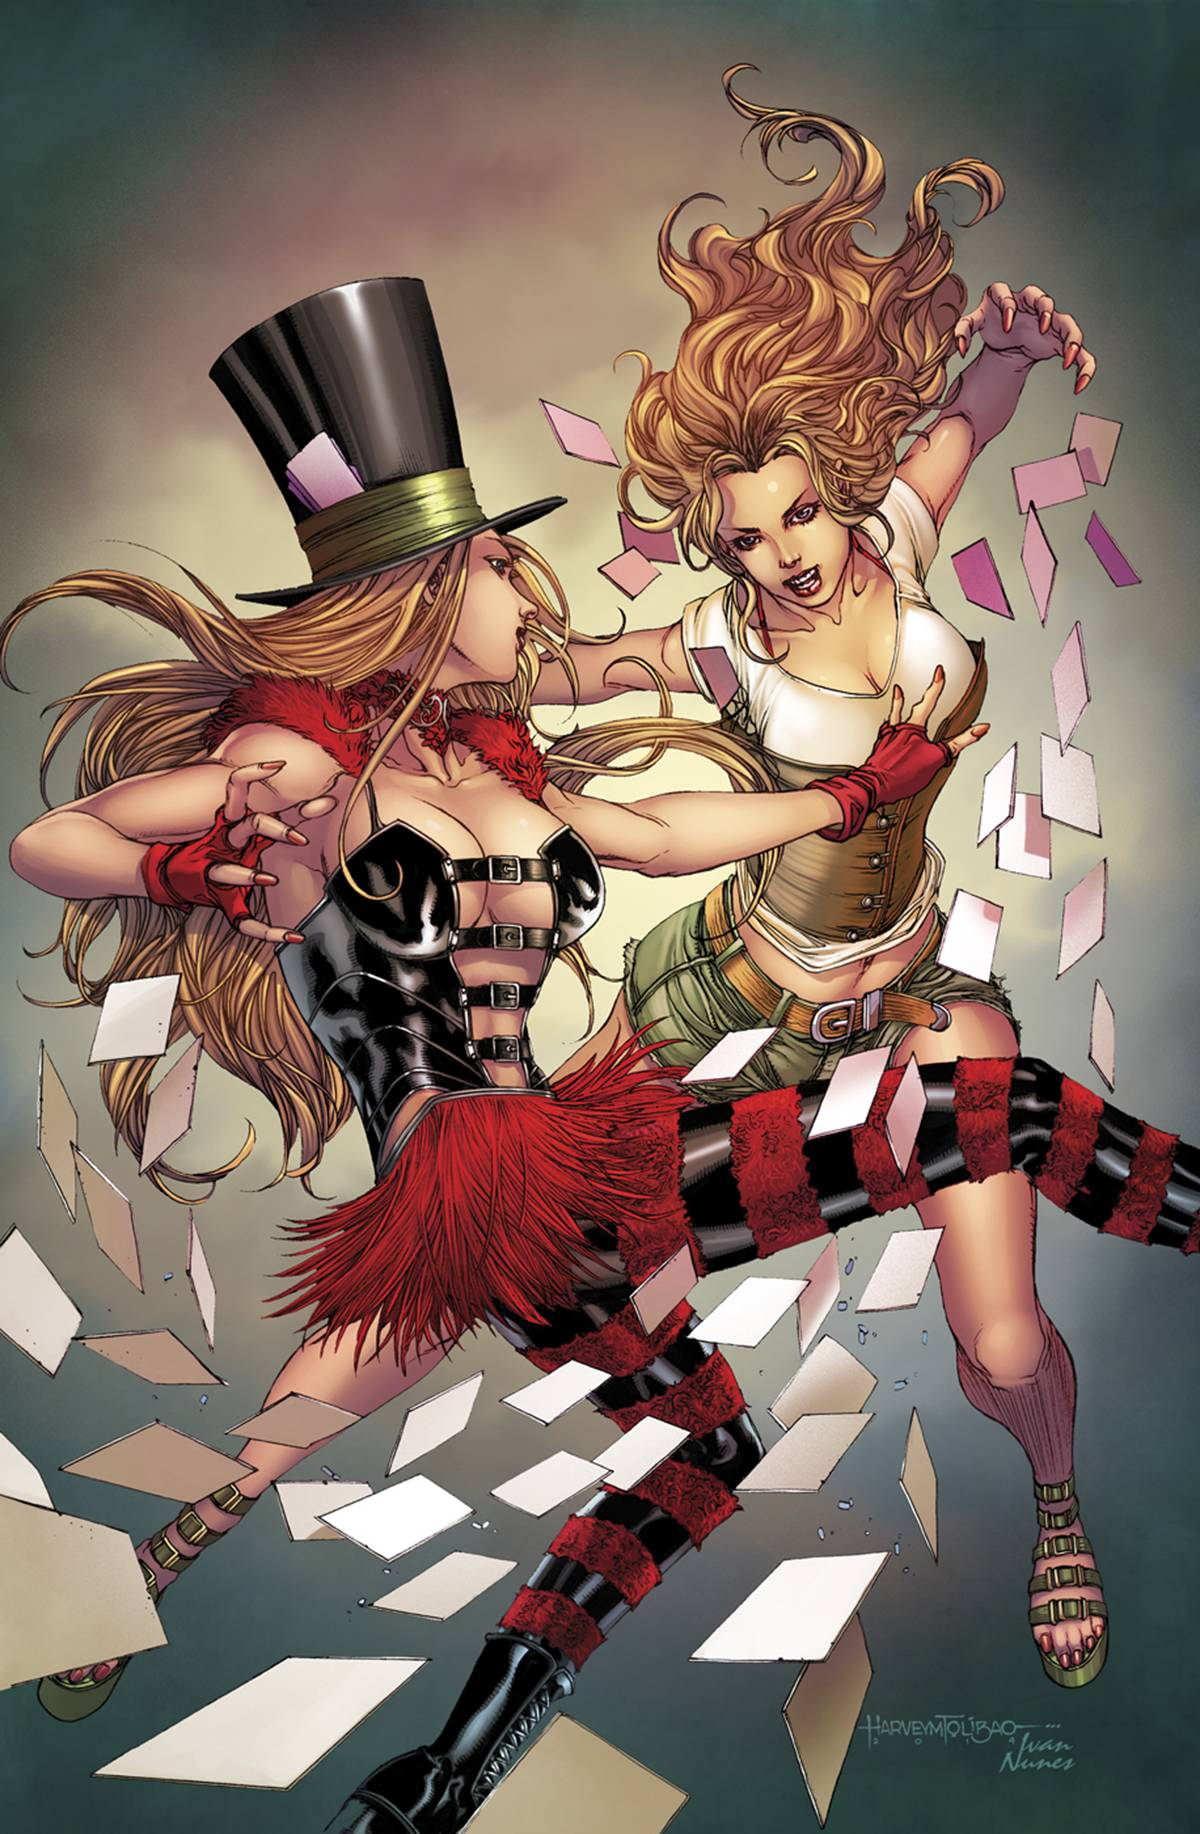 Grimm Fairy Tales Presents Wonderland Vol 1 31 | Zenescope